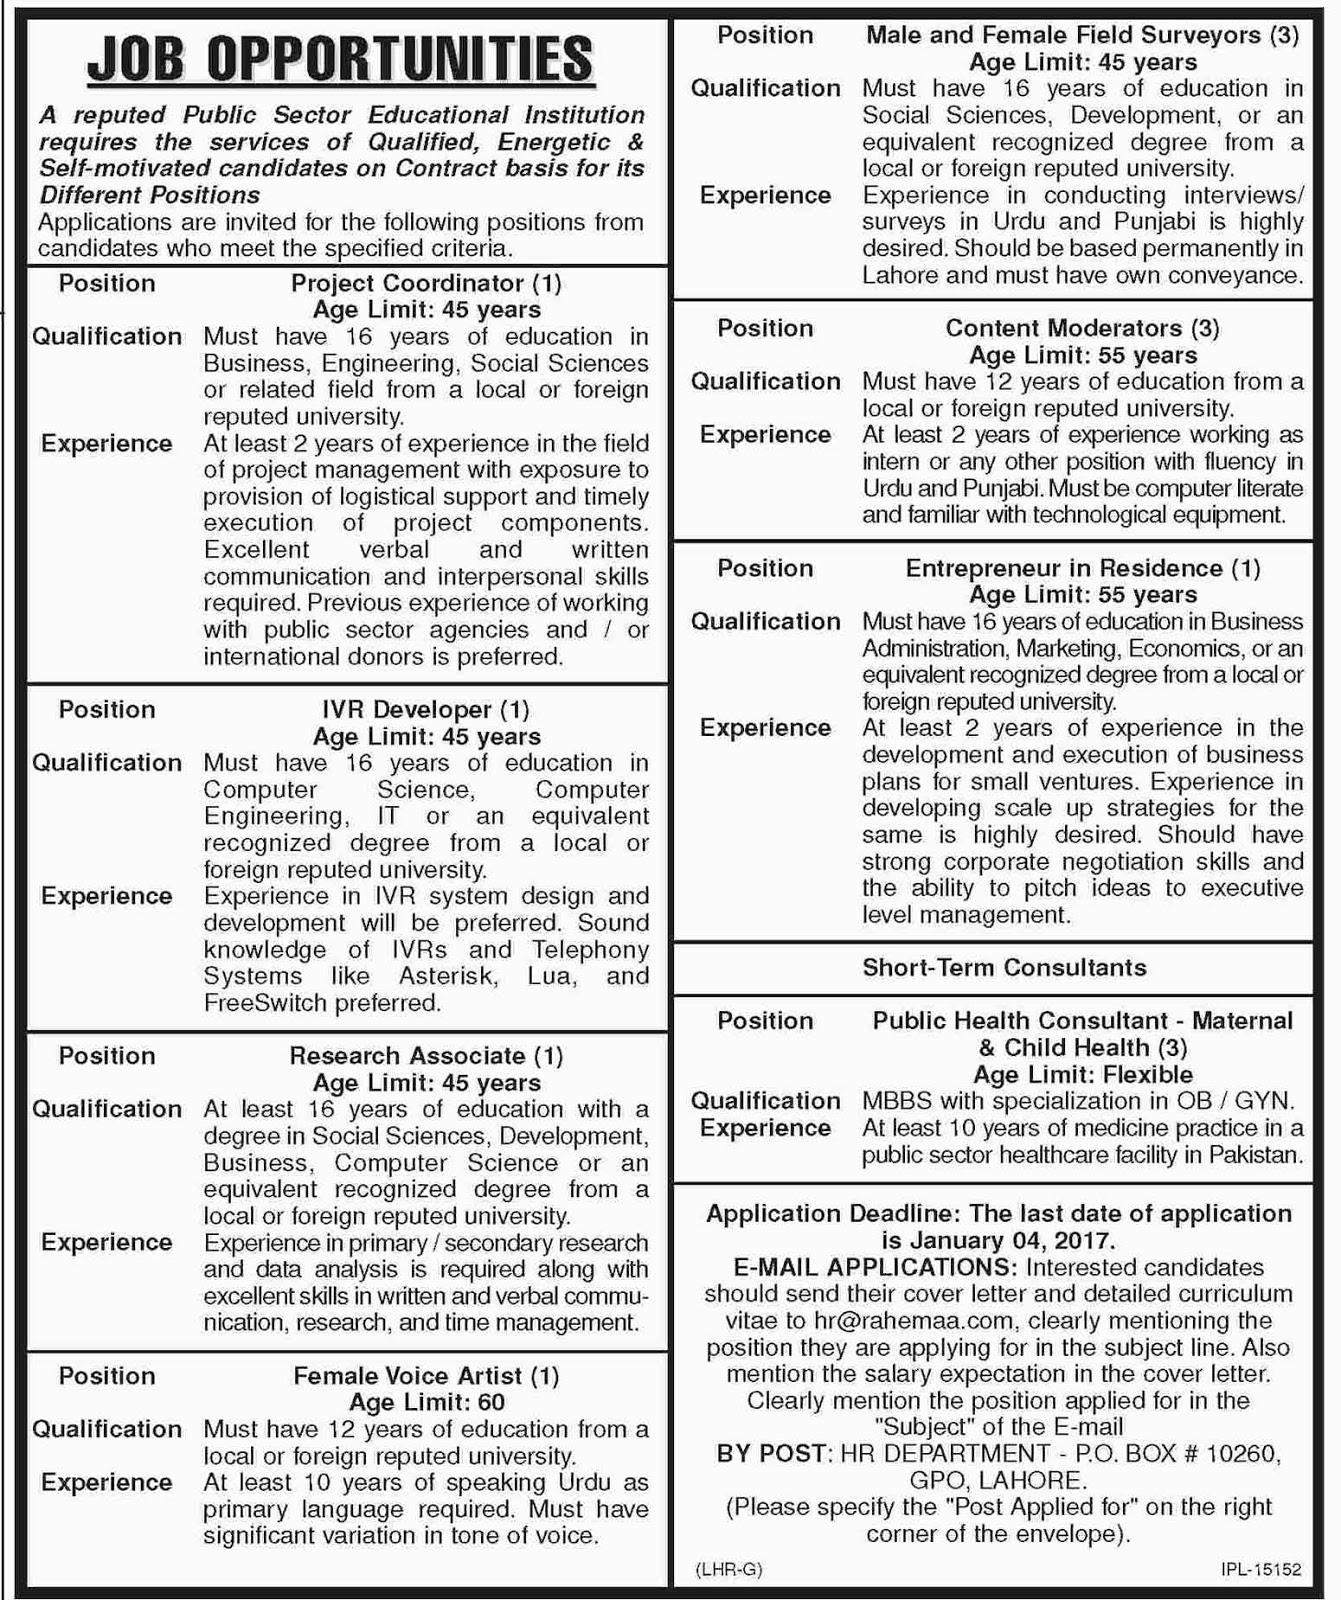 Jobs in Public Sector Organization Lahore